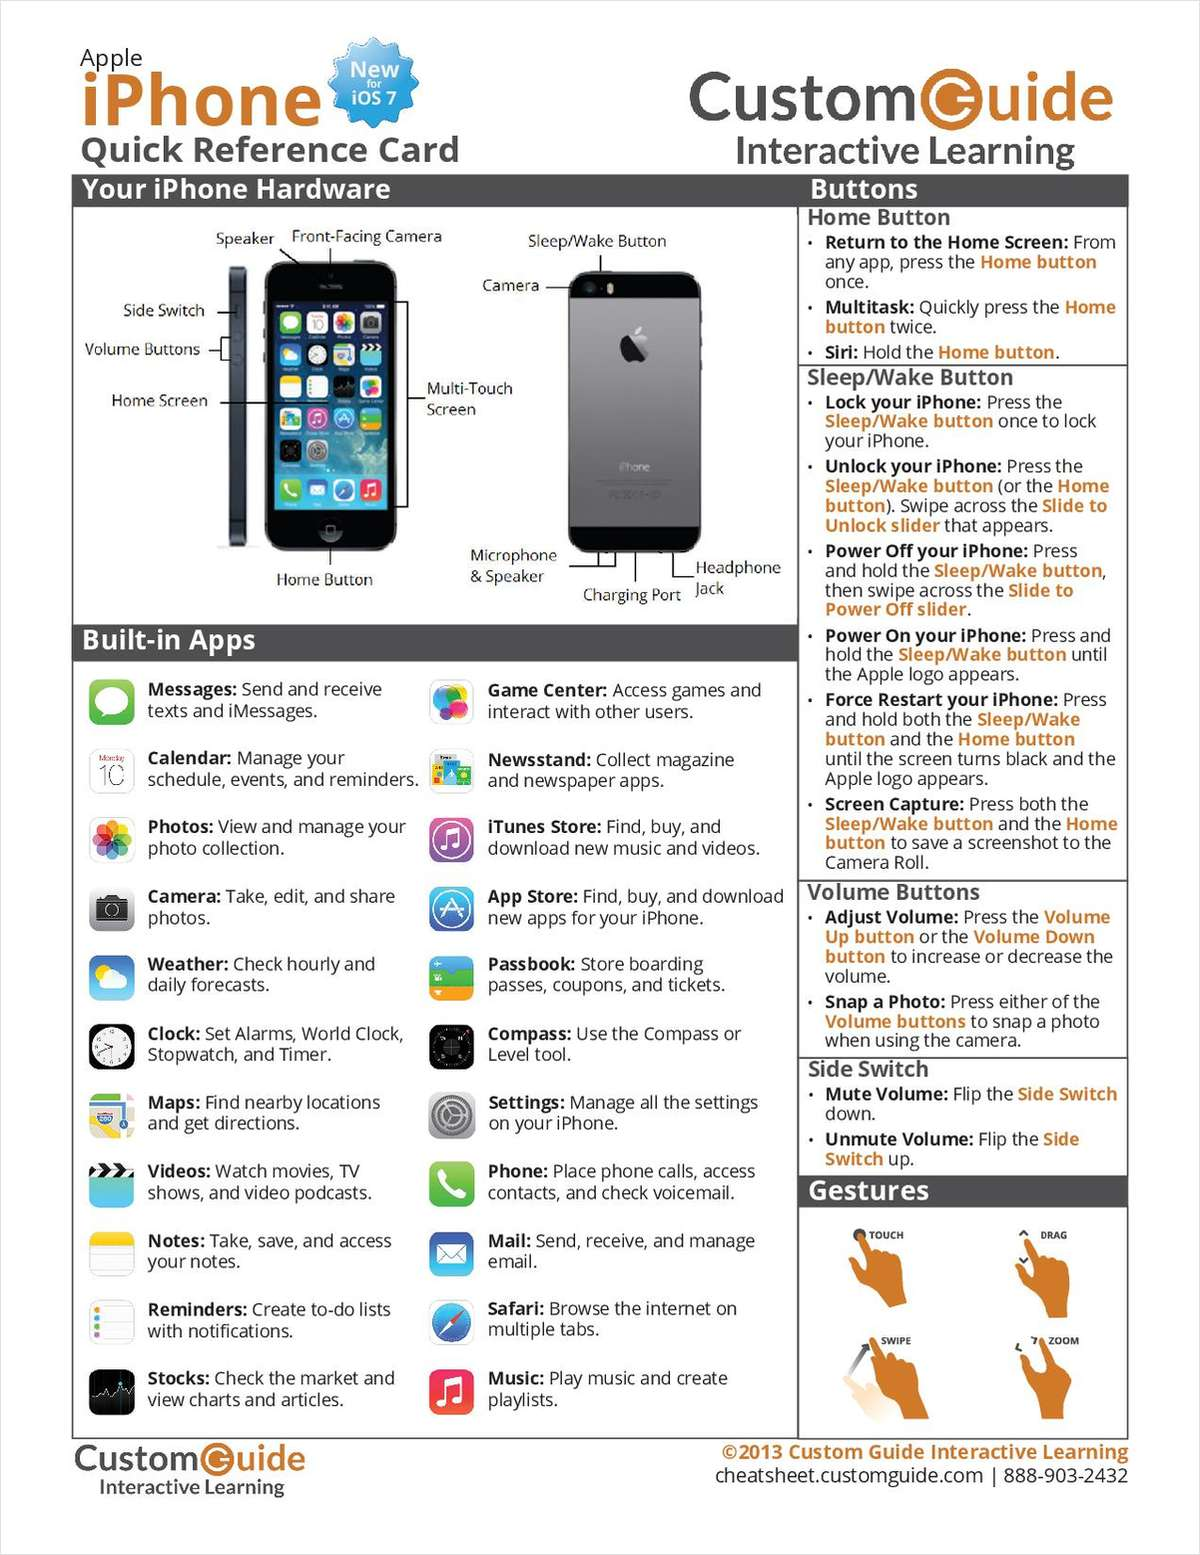 Apple iPhone (New for iOS 7) -- Free Quick Reference Card